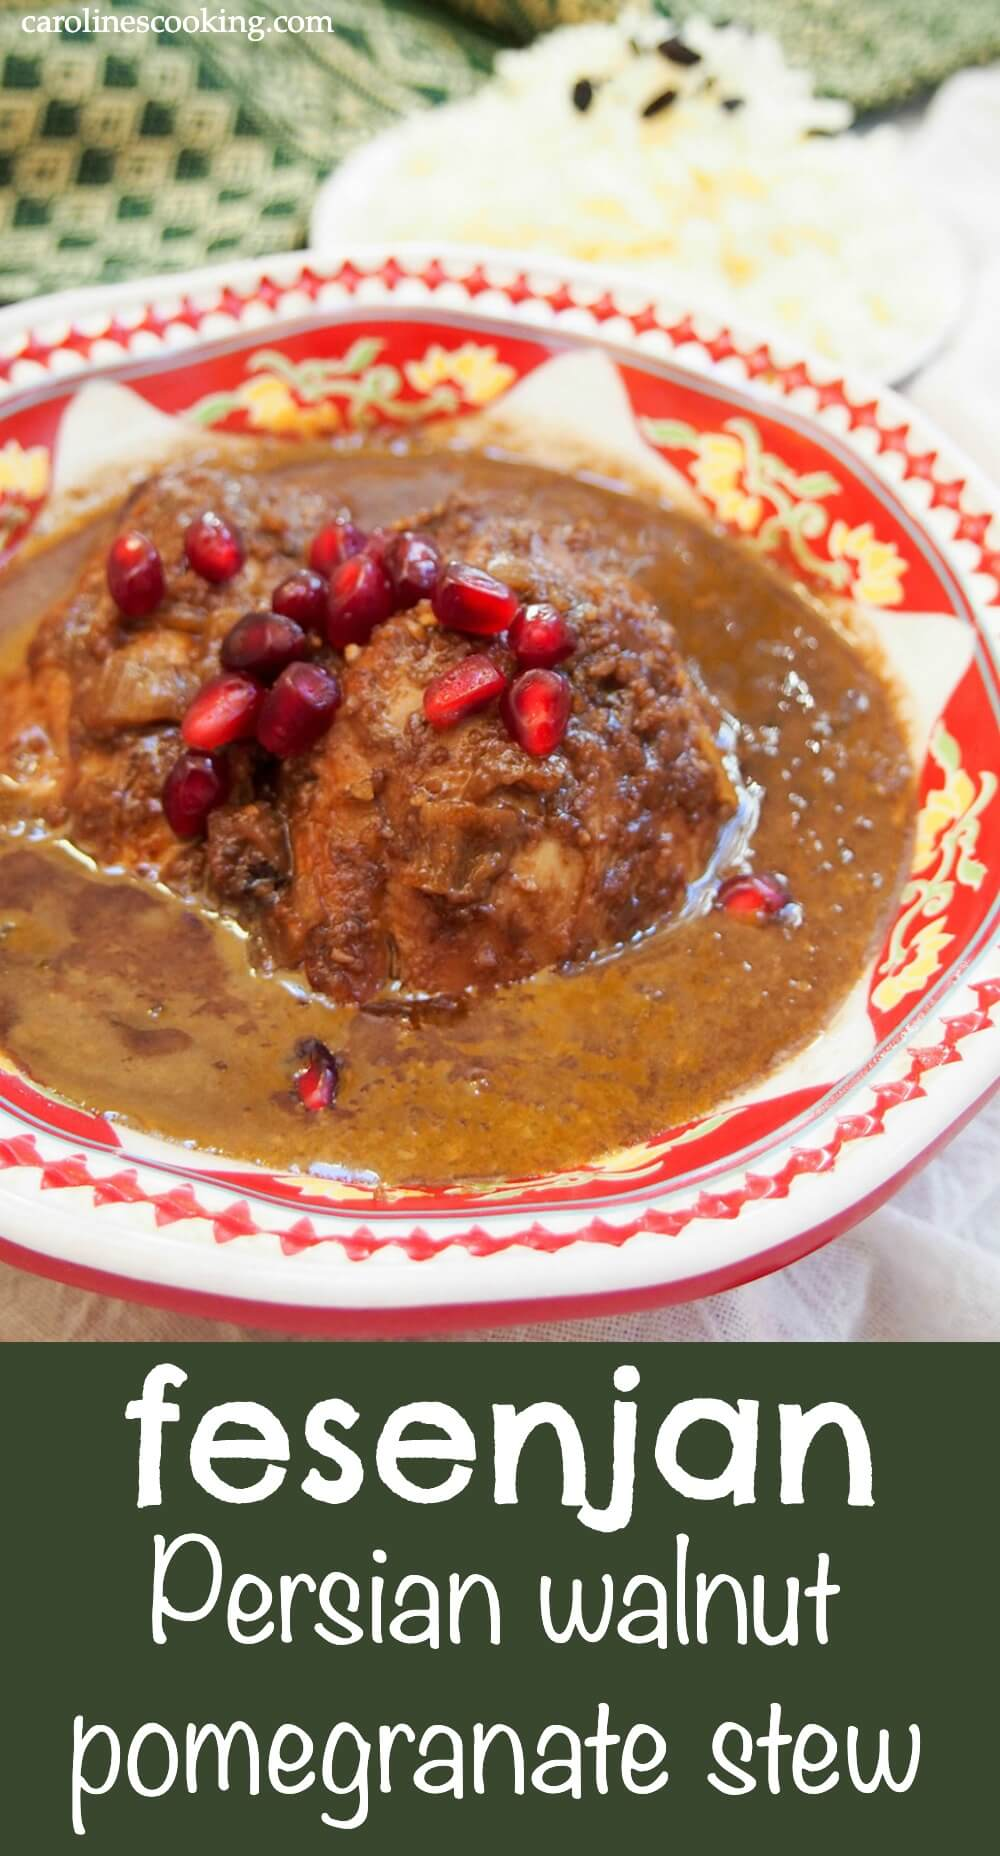 Fesenjan is an easy and delicious Persian stew. The pomegranate and walnut sauce makes it hearty and with an unusual sweet-tangy flavor. Here it's made with chicken, but you can use other meats as well (or veg). Plus, it's great to make ahead so perfect for meal prep. #persian #stew #pomegranate #walnut